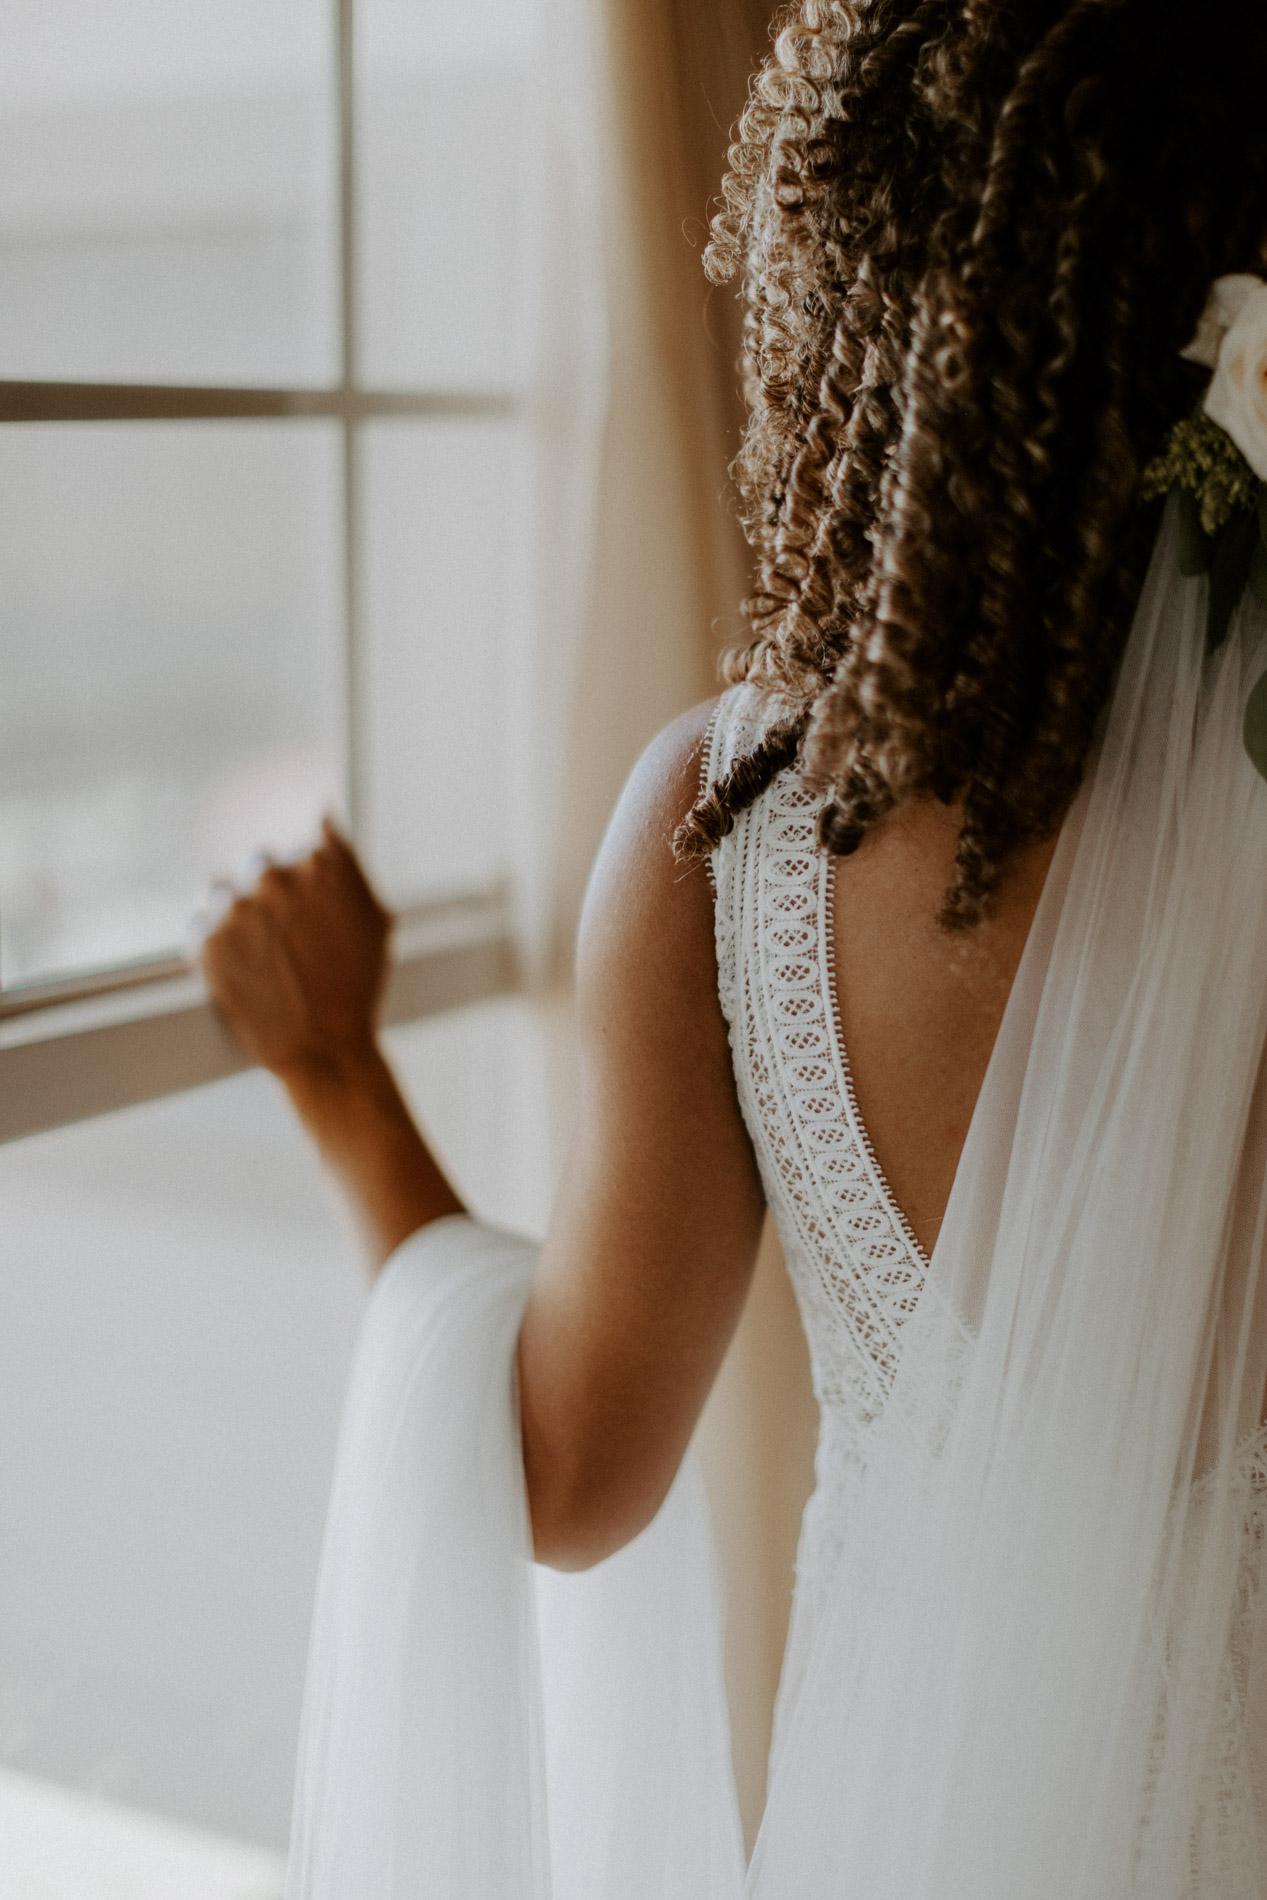 Bride looking out window as she is getting ready for her wedding